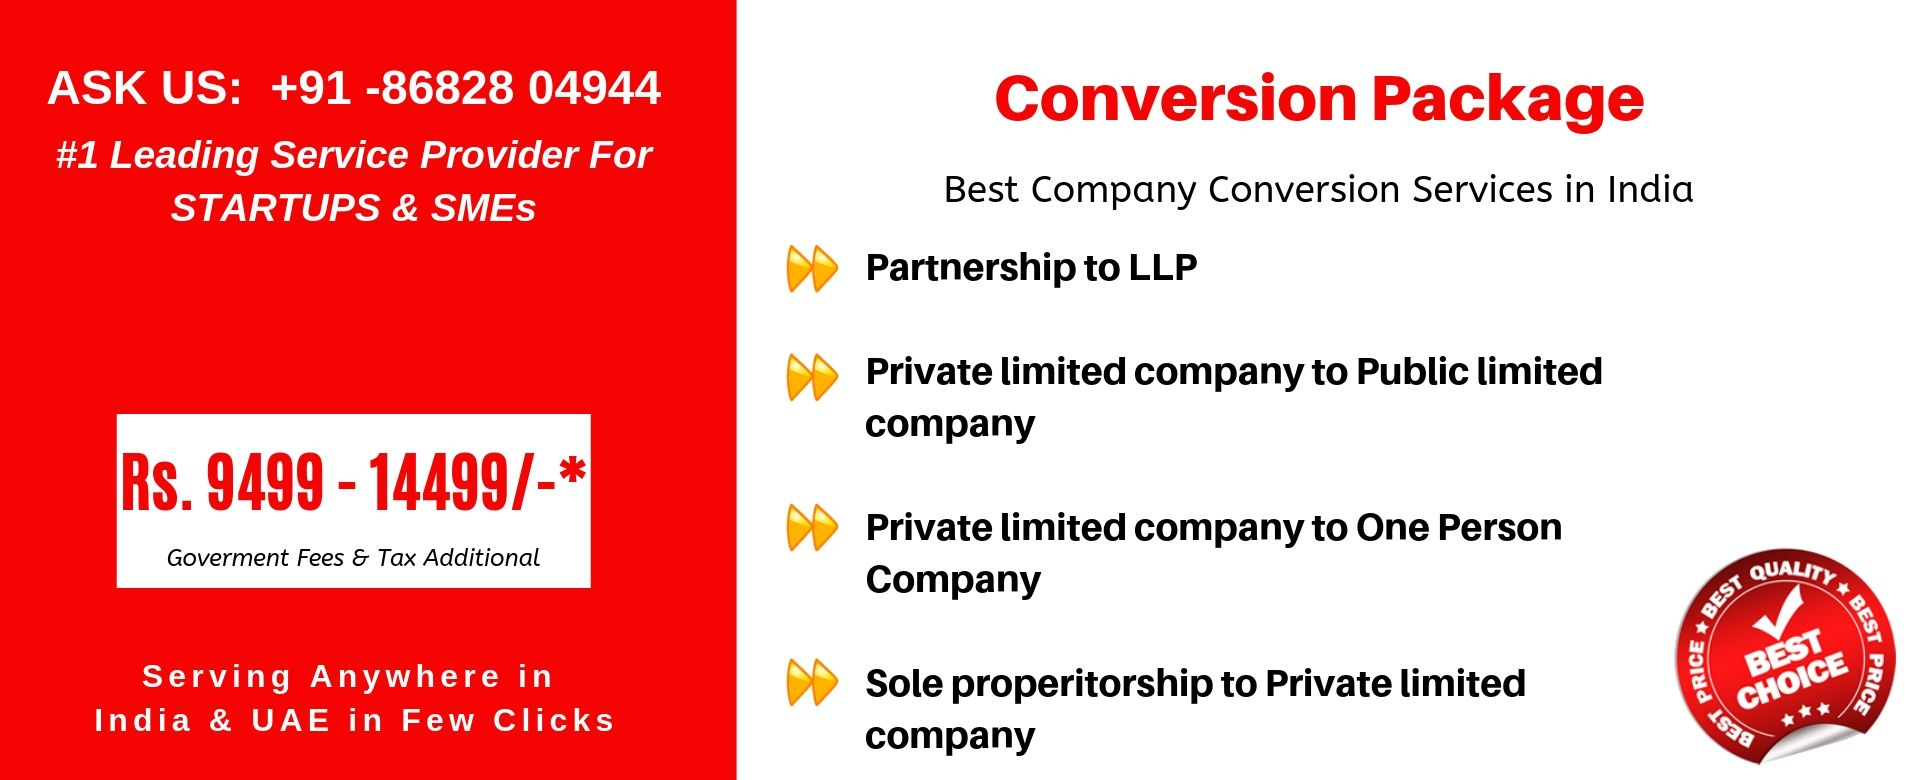 conversion package in india